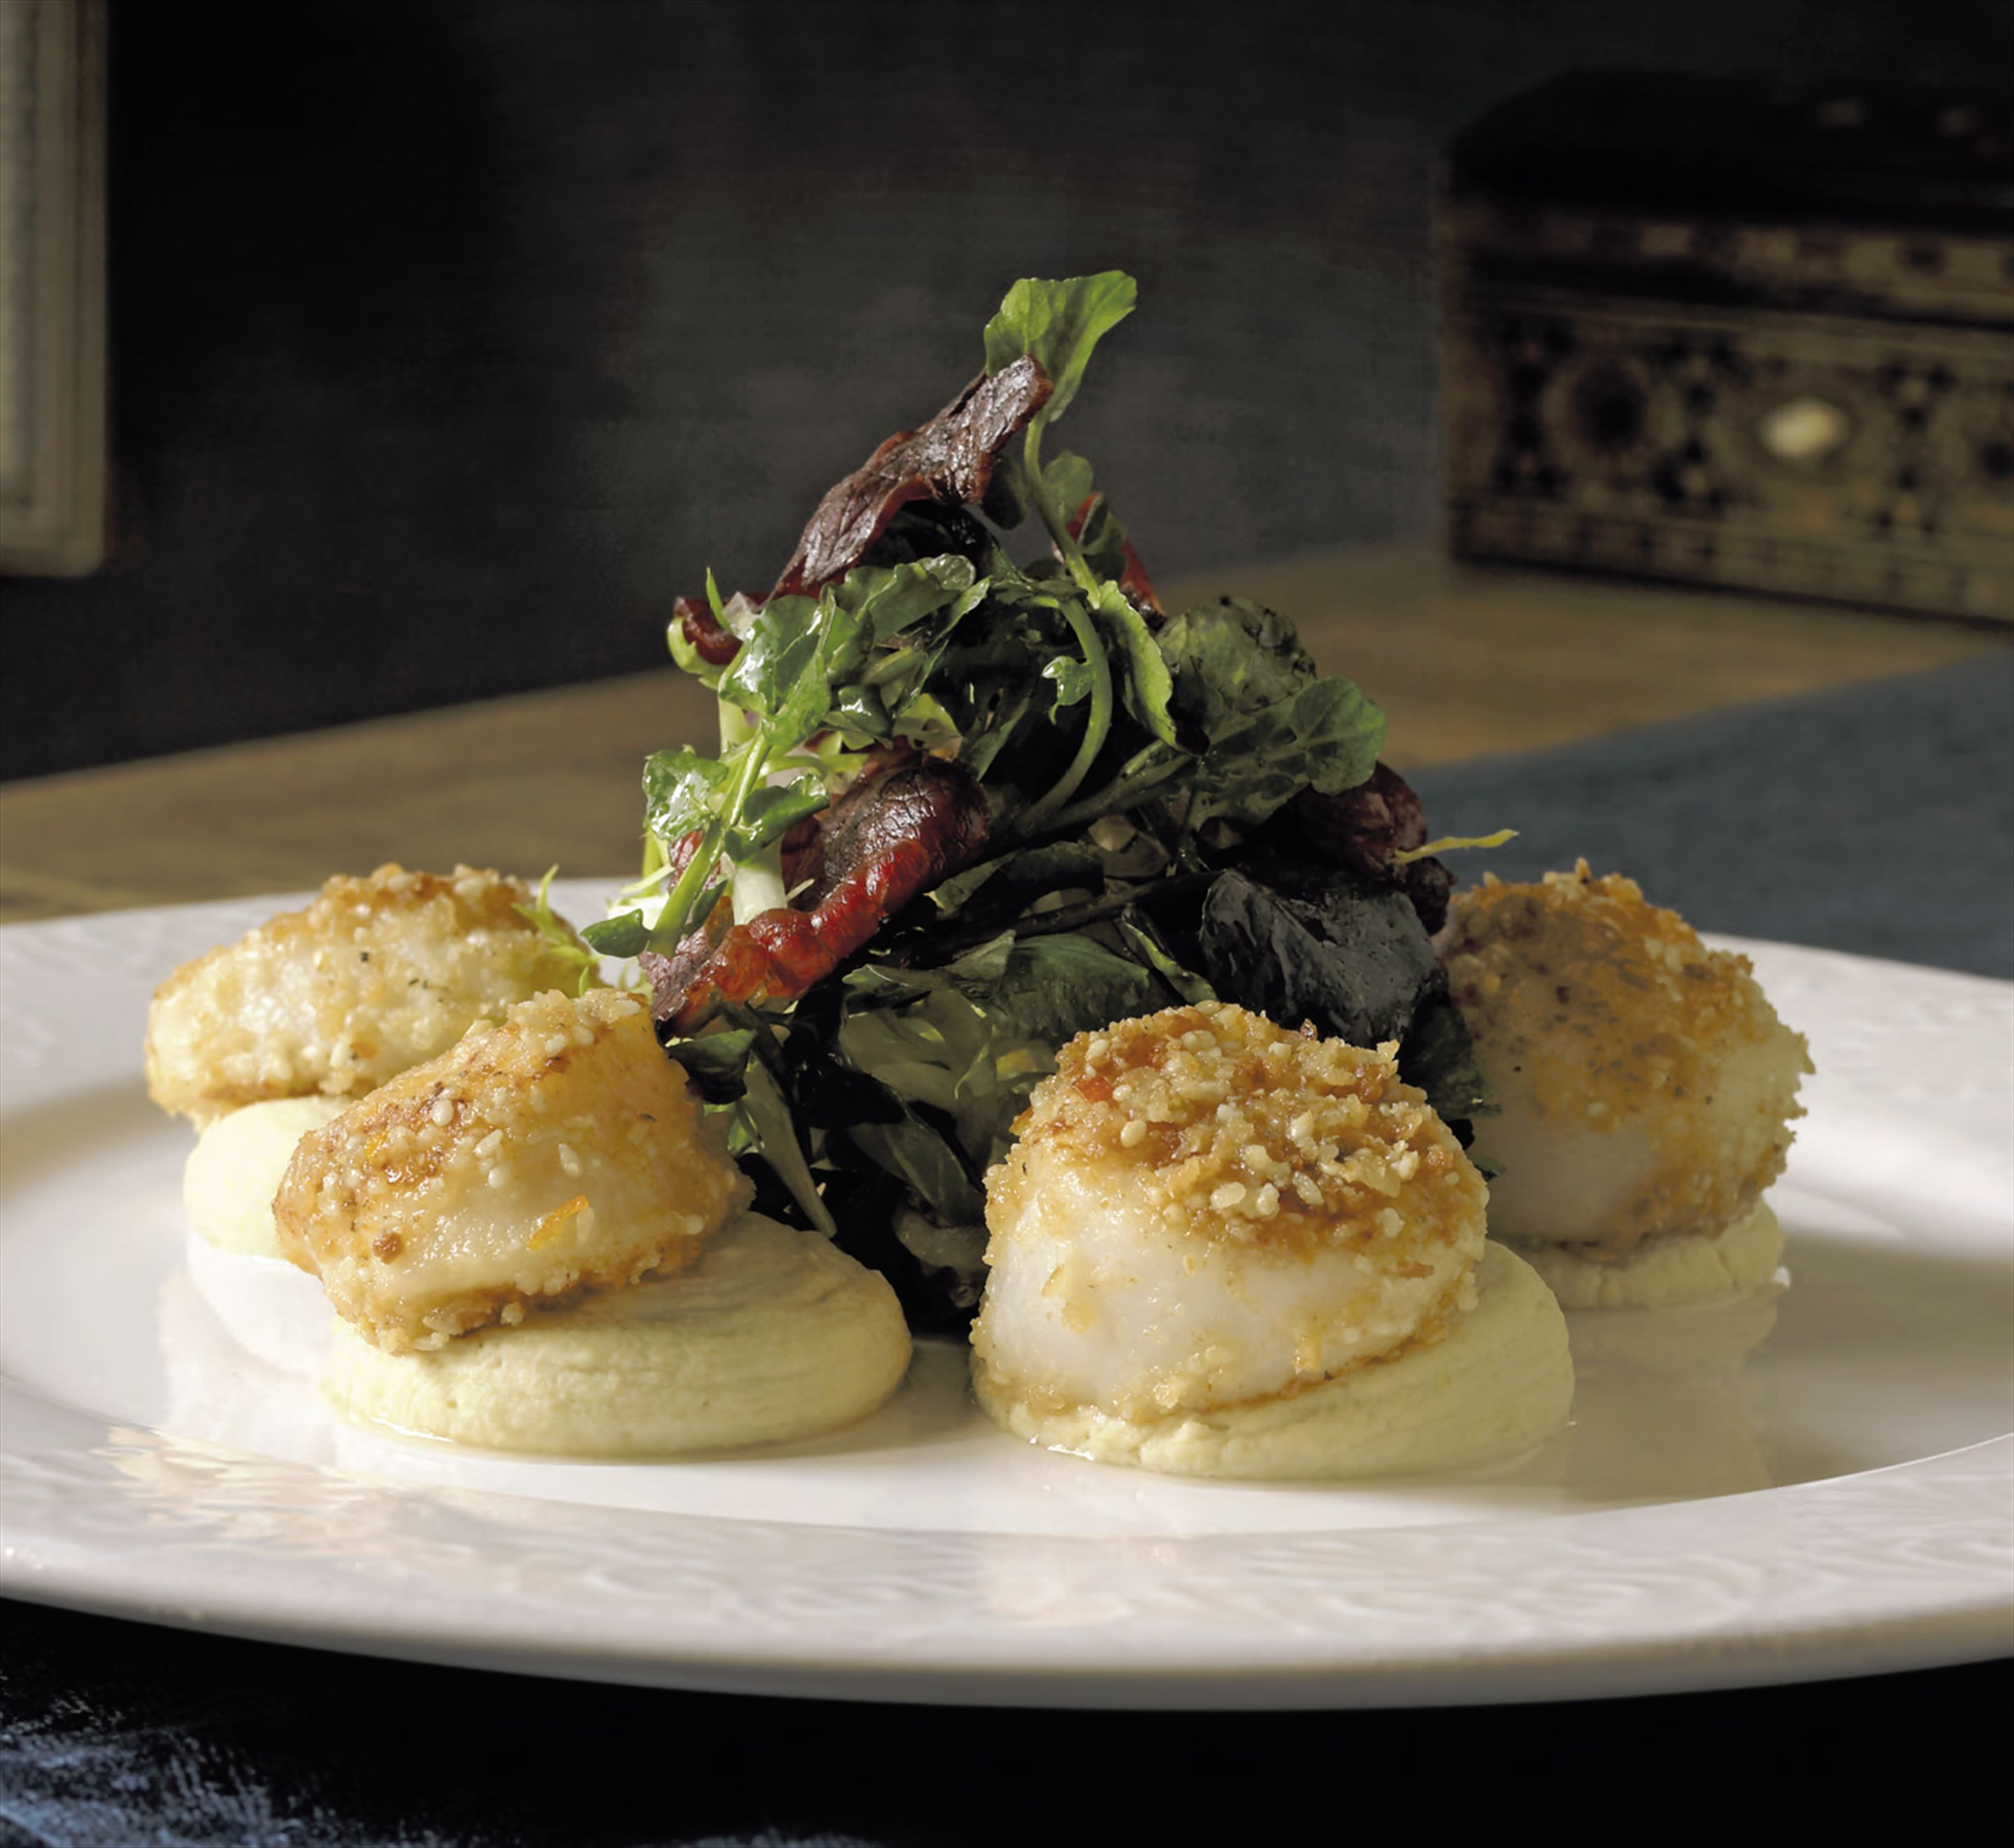 Seared scallops with almond crumbs, hummus and crisp armenian air-dried beef